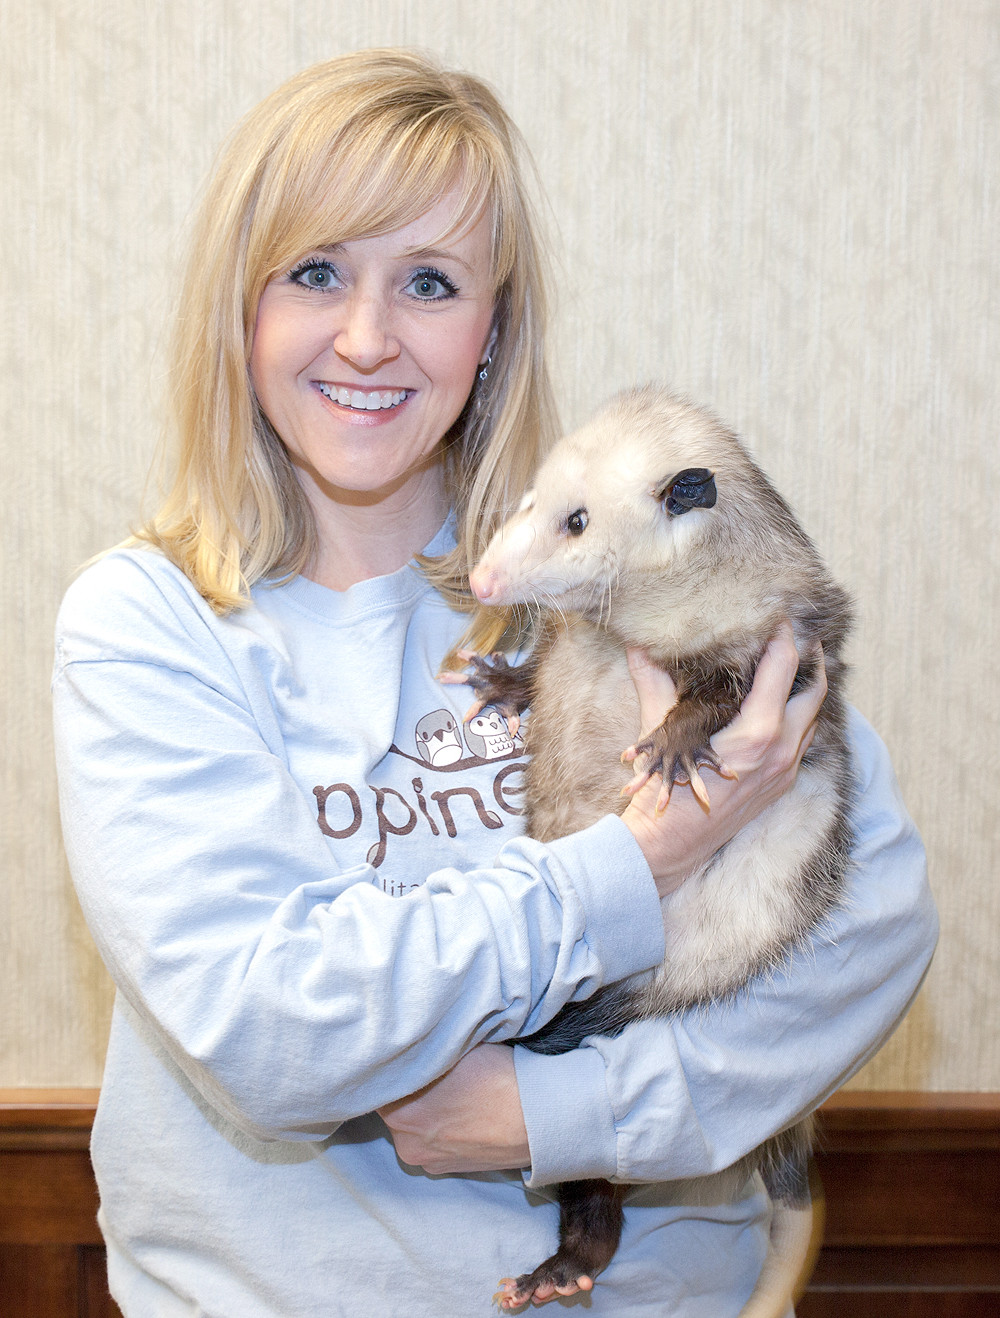 Sherry Teas poses with Eugene, a friendly rehabilitated opossum who was injured as a baby.